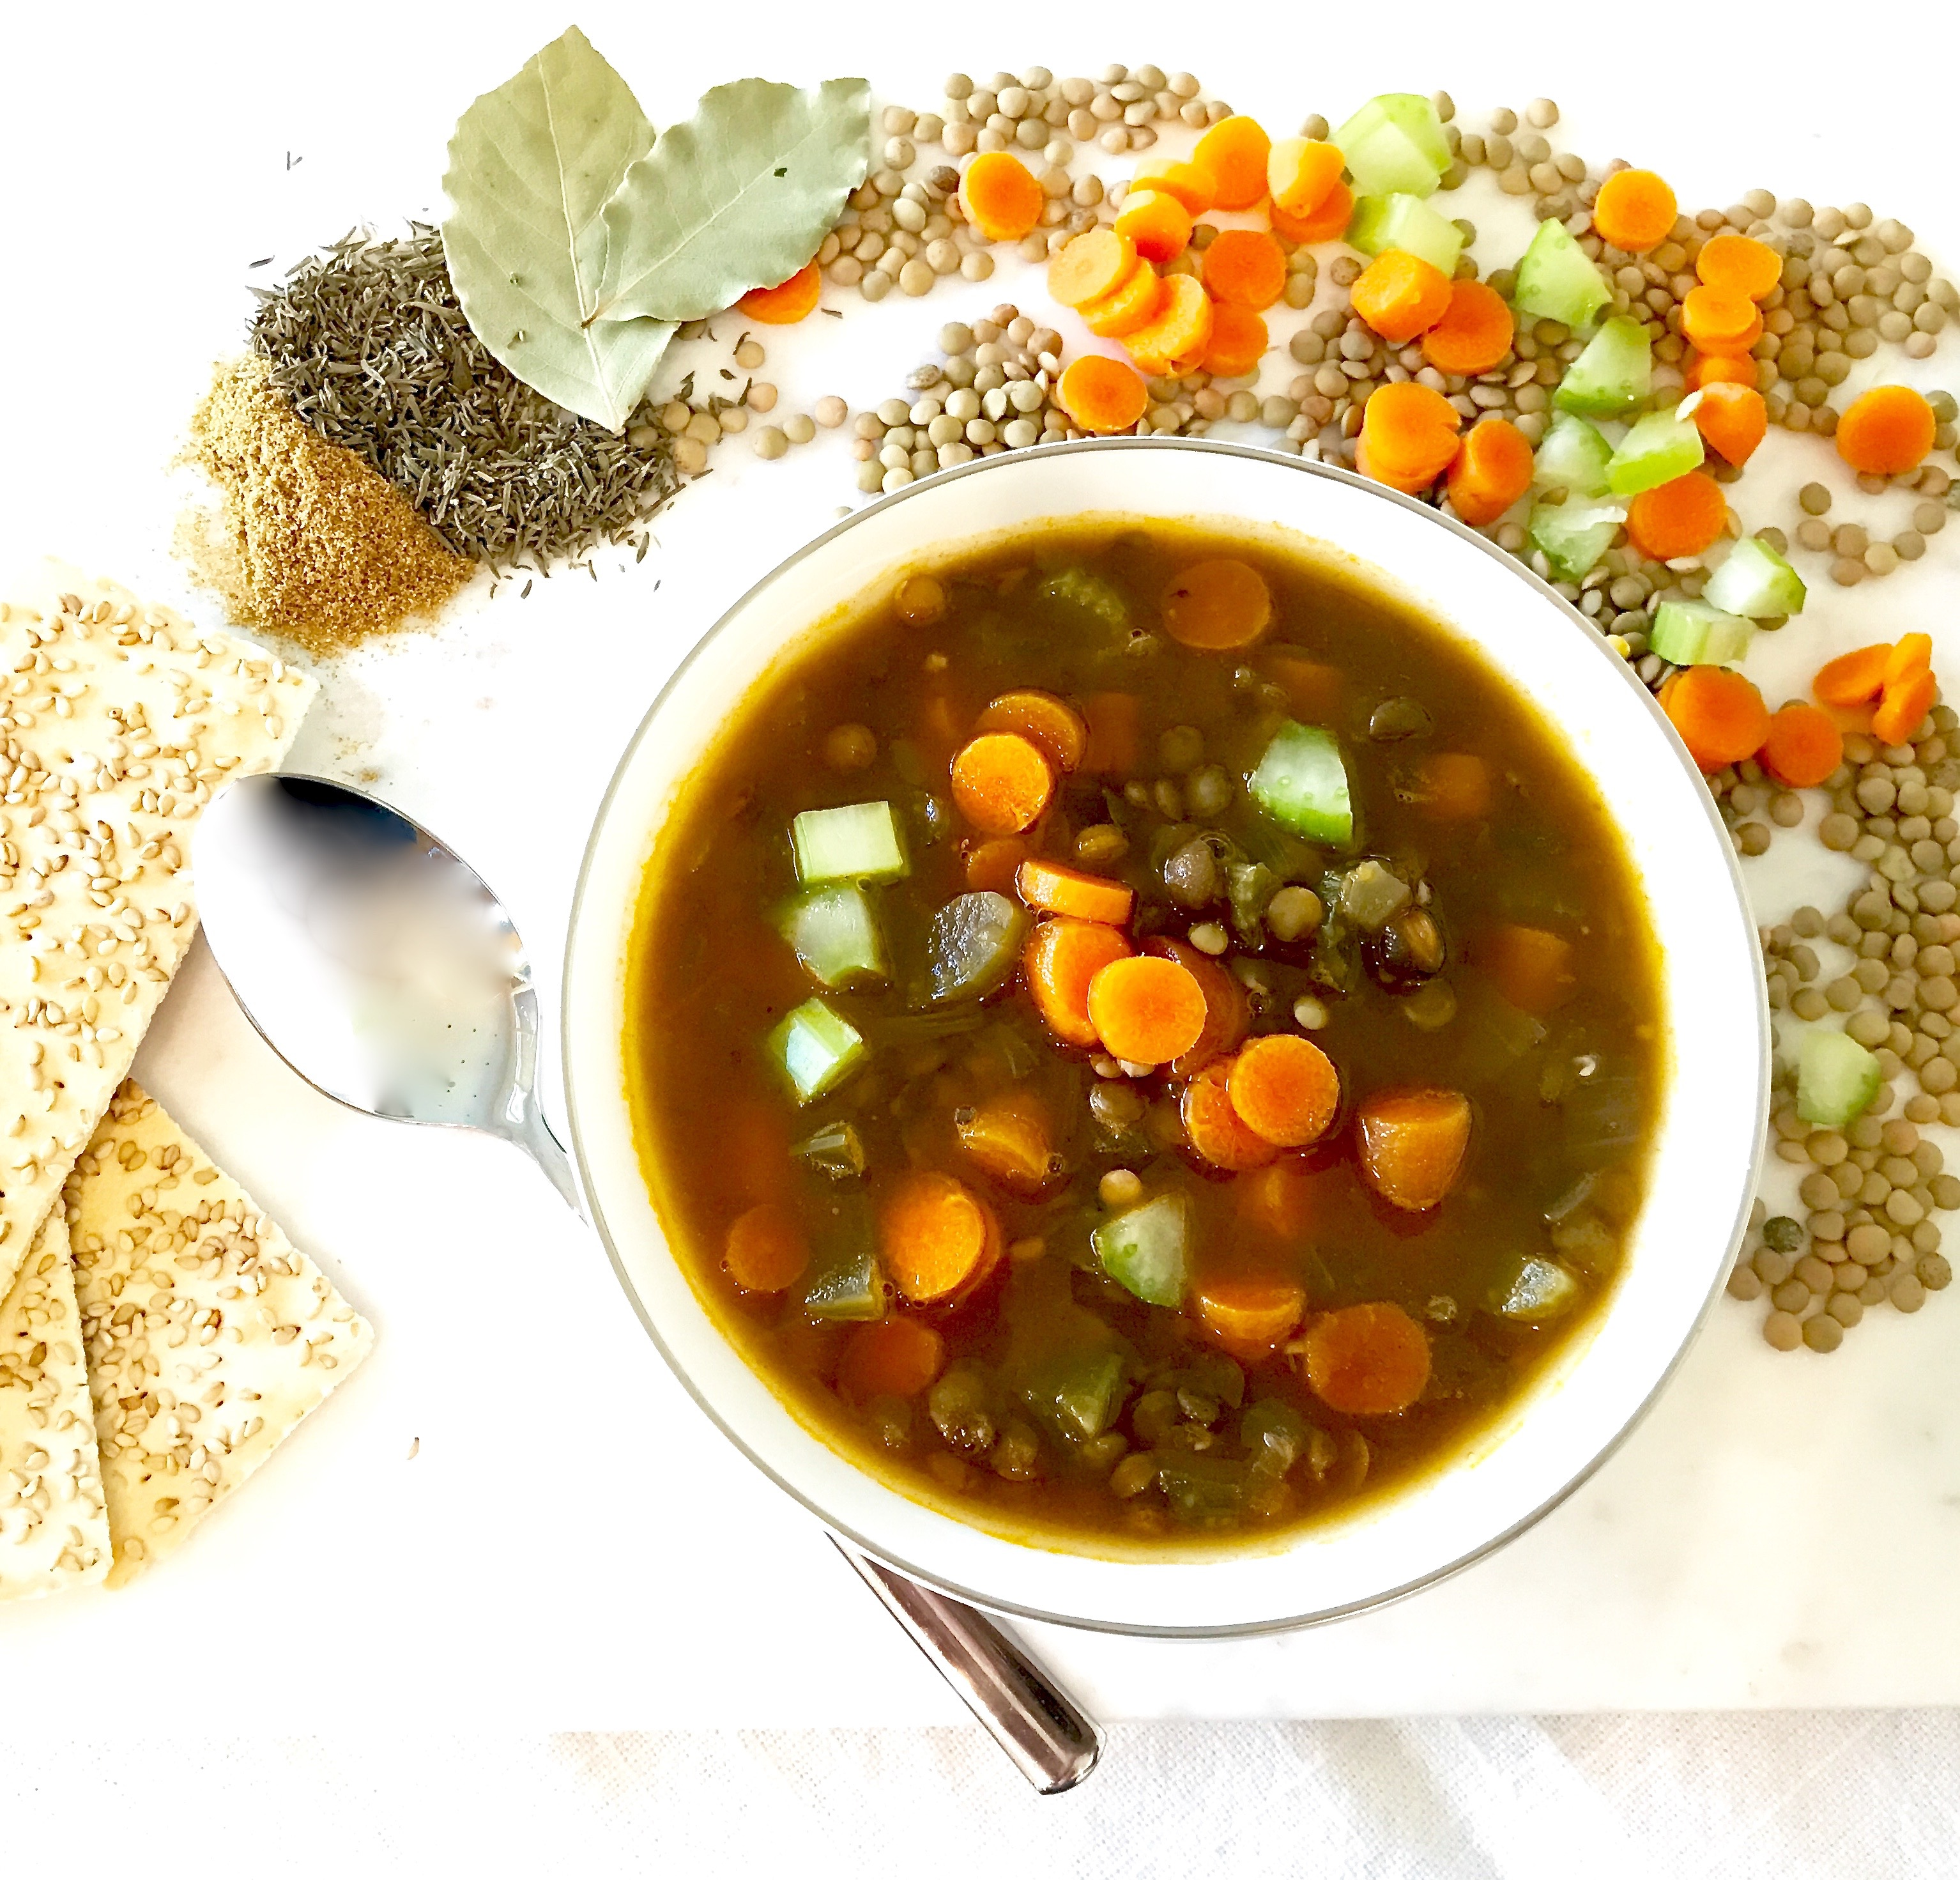 Oh So Simple Lentil Soup recipe is gluten free, healthy, vegetarian and can be vegan at diginwithdana.com.